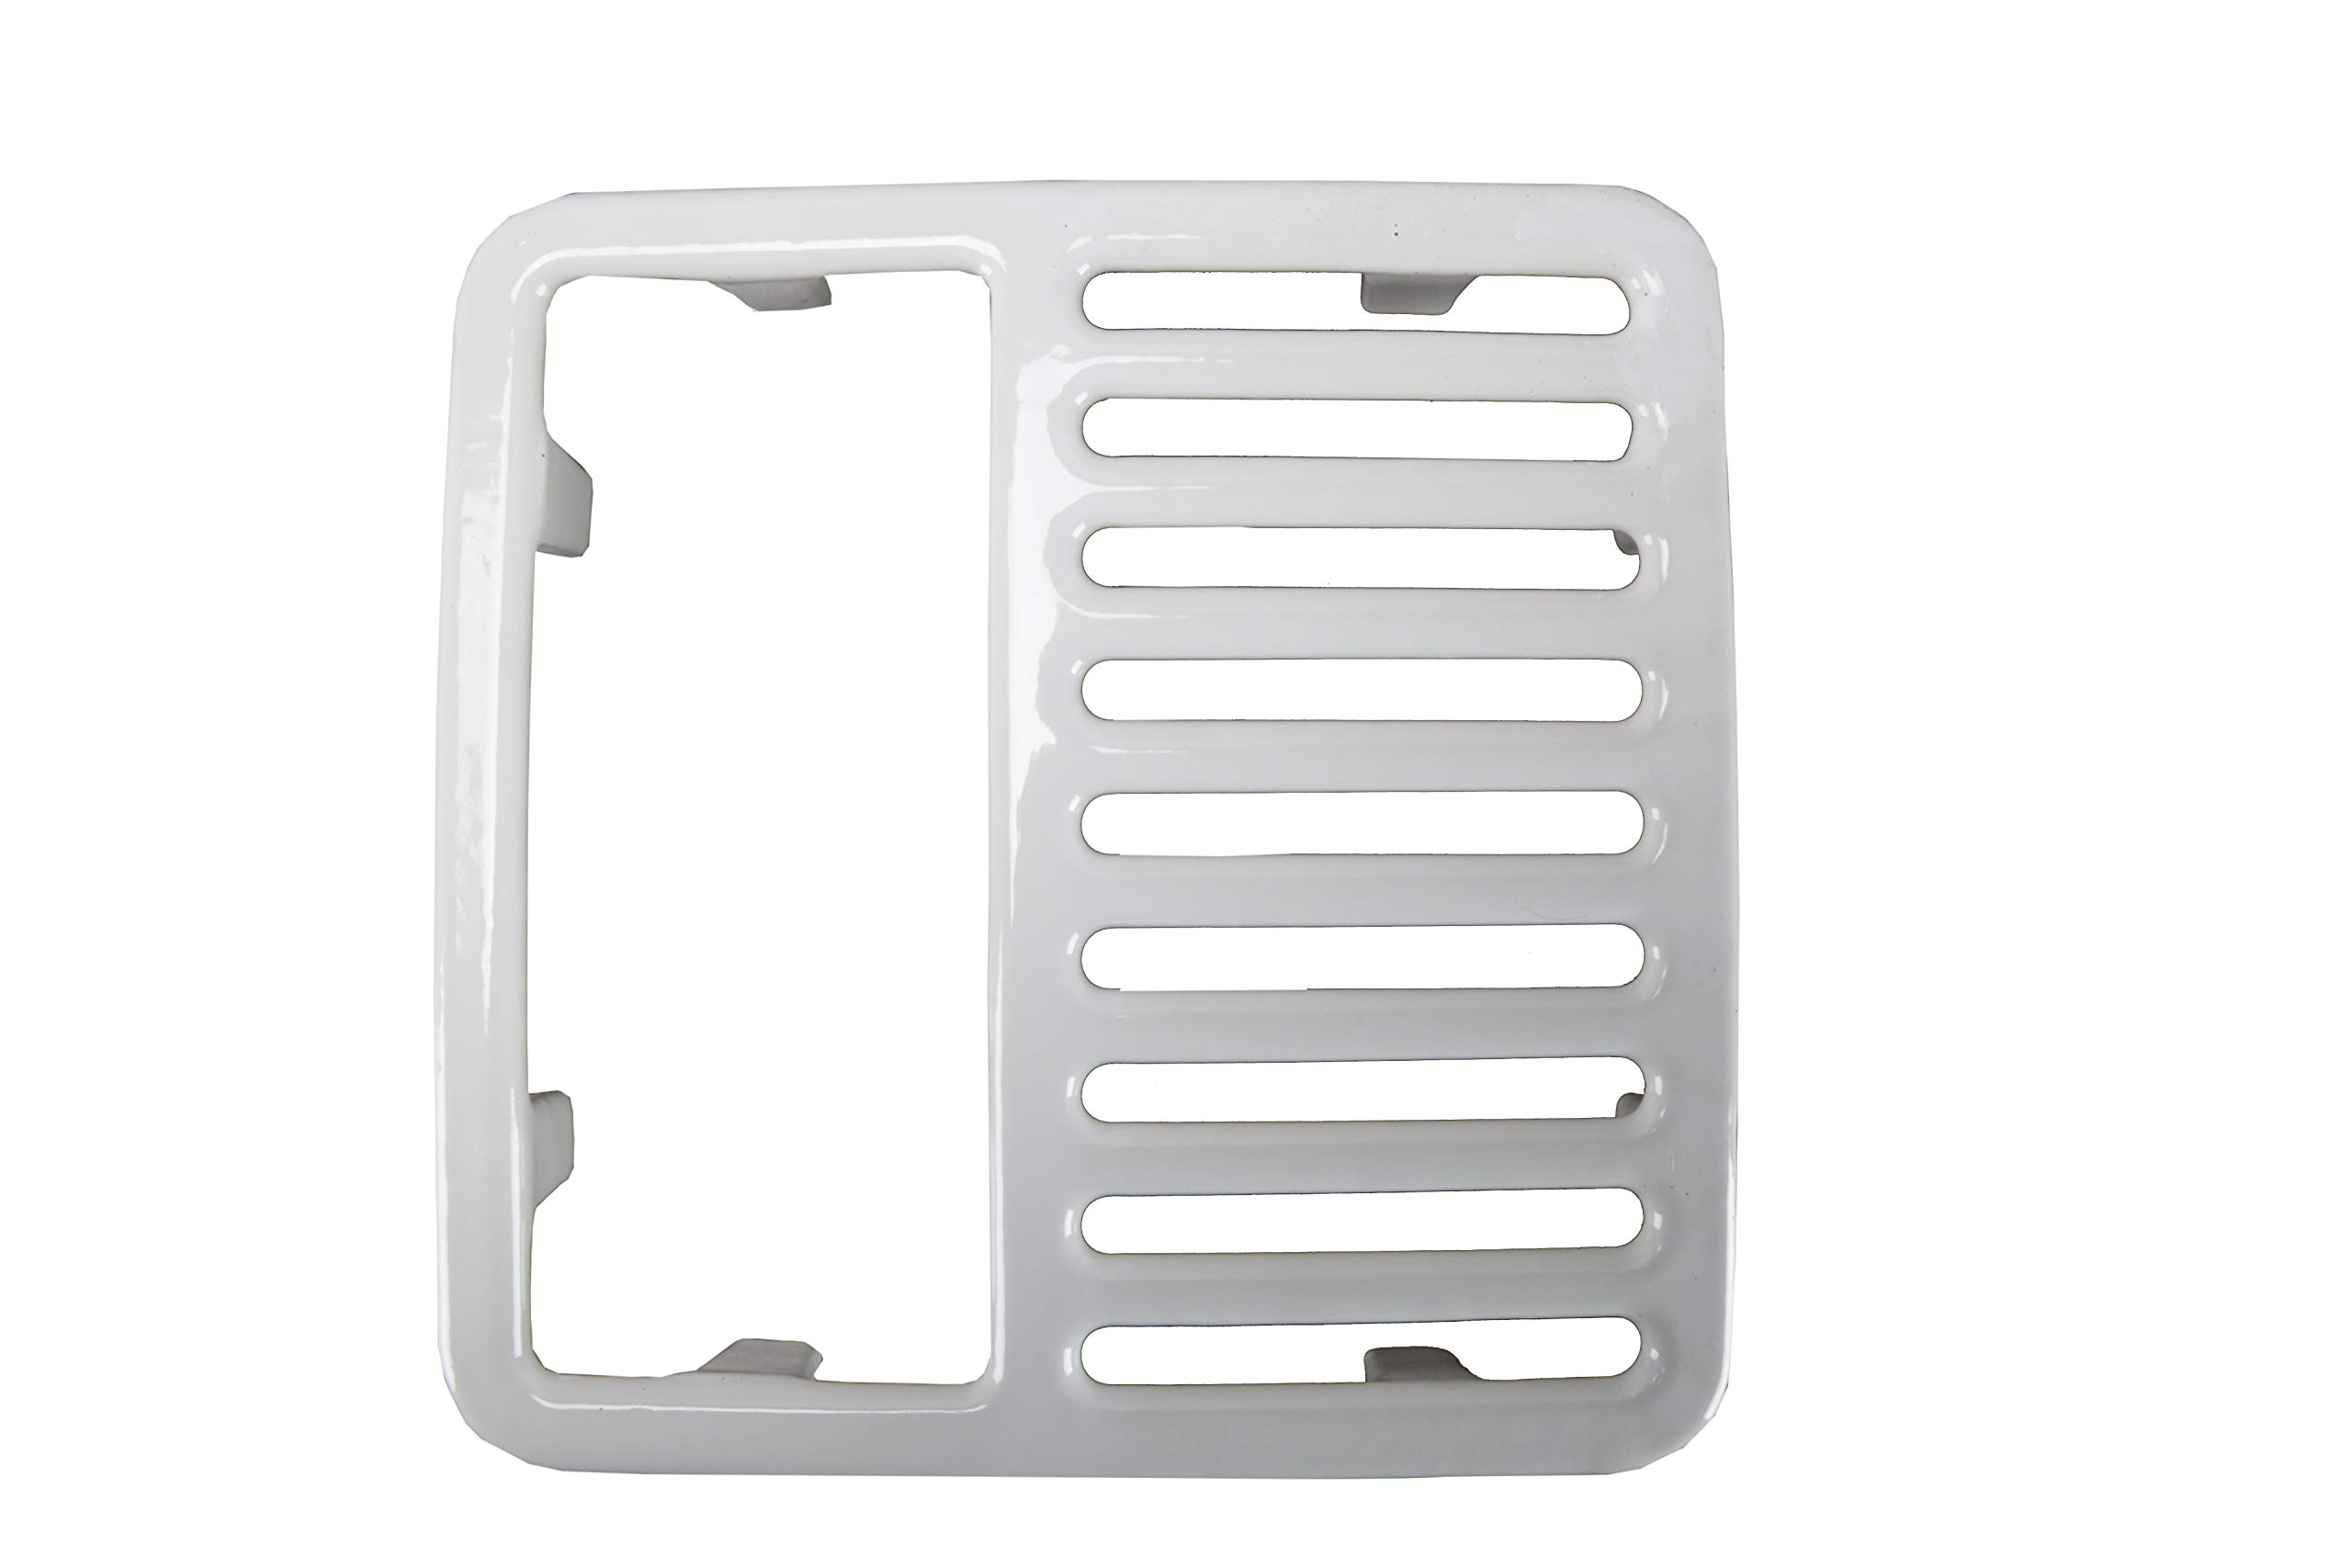 GSW FS-T1/2 Floor Sink Top Grate, 1/2 Size by GSW